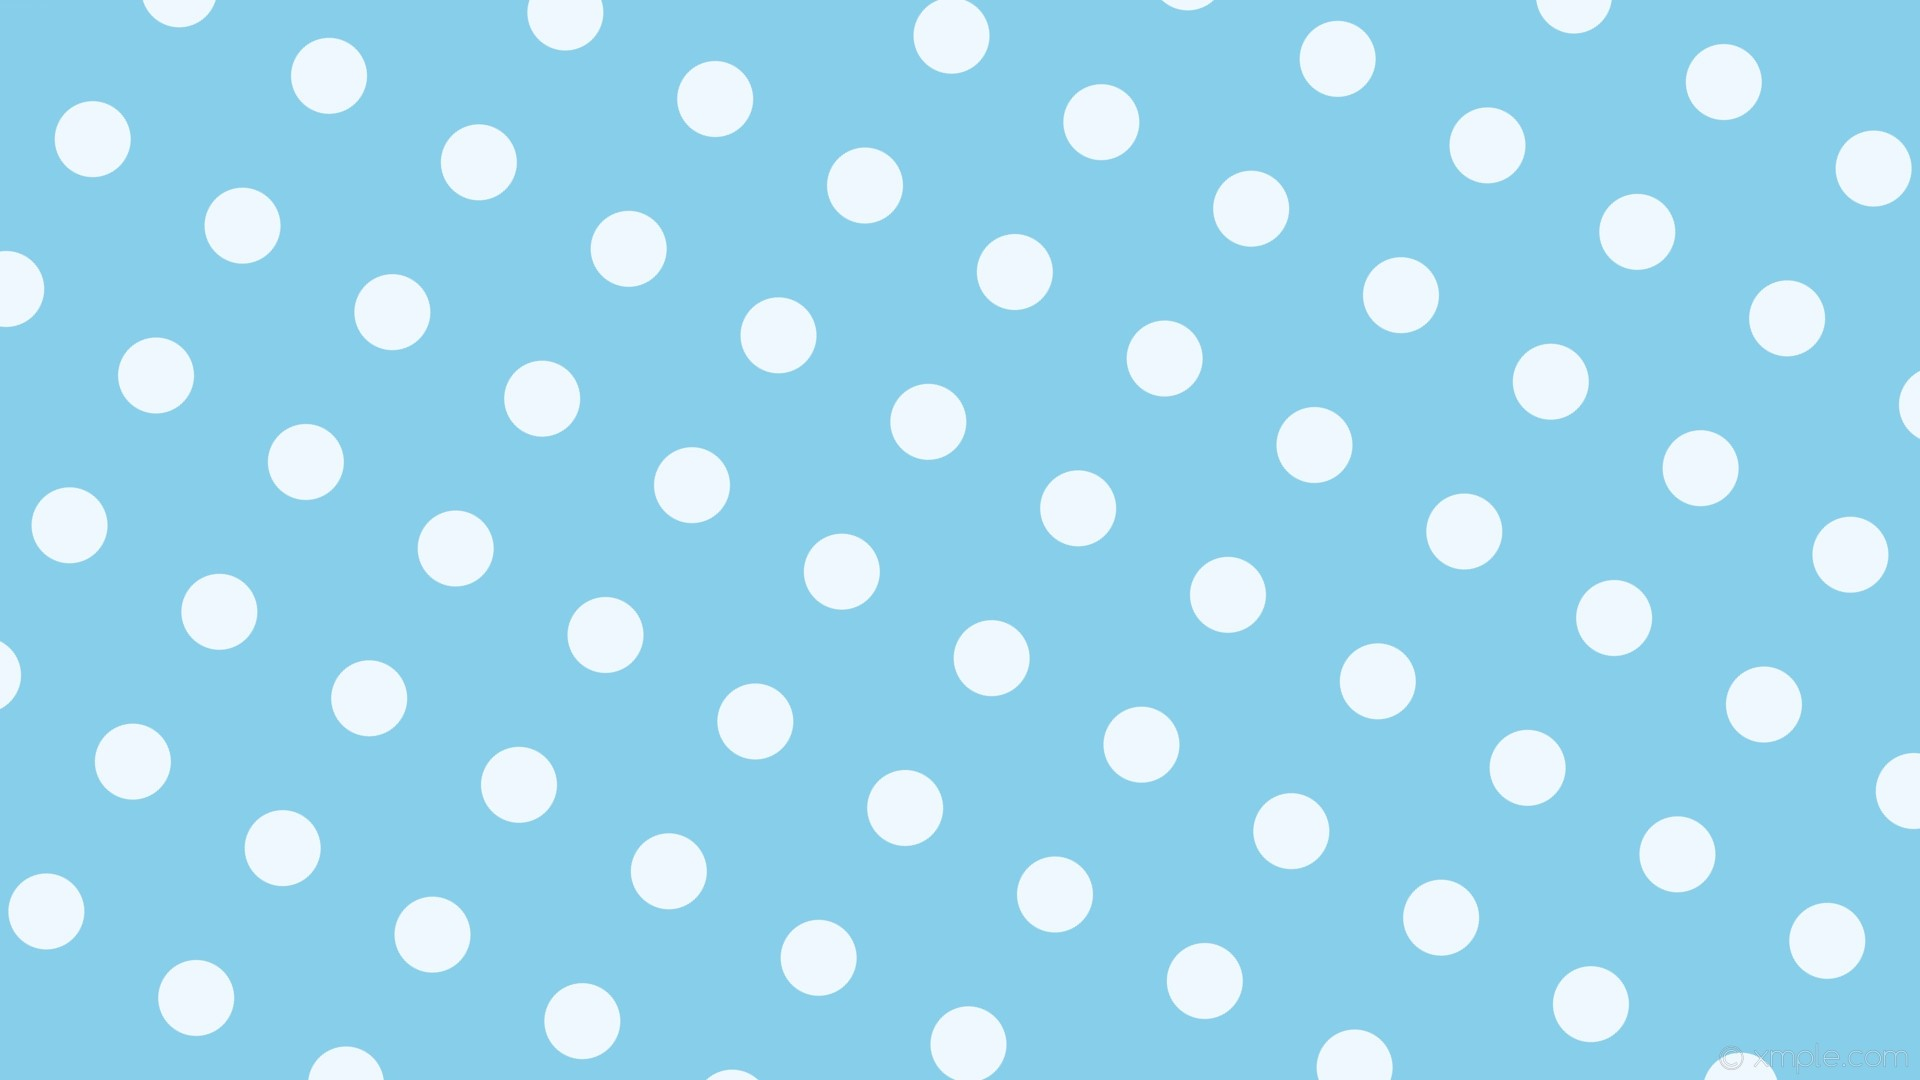 Polka Dot hd wallpaper download